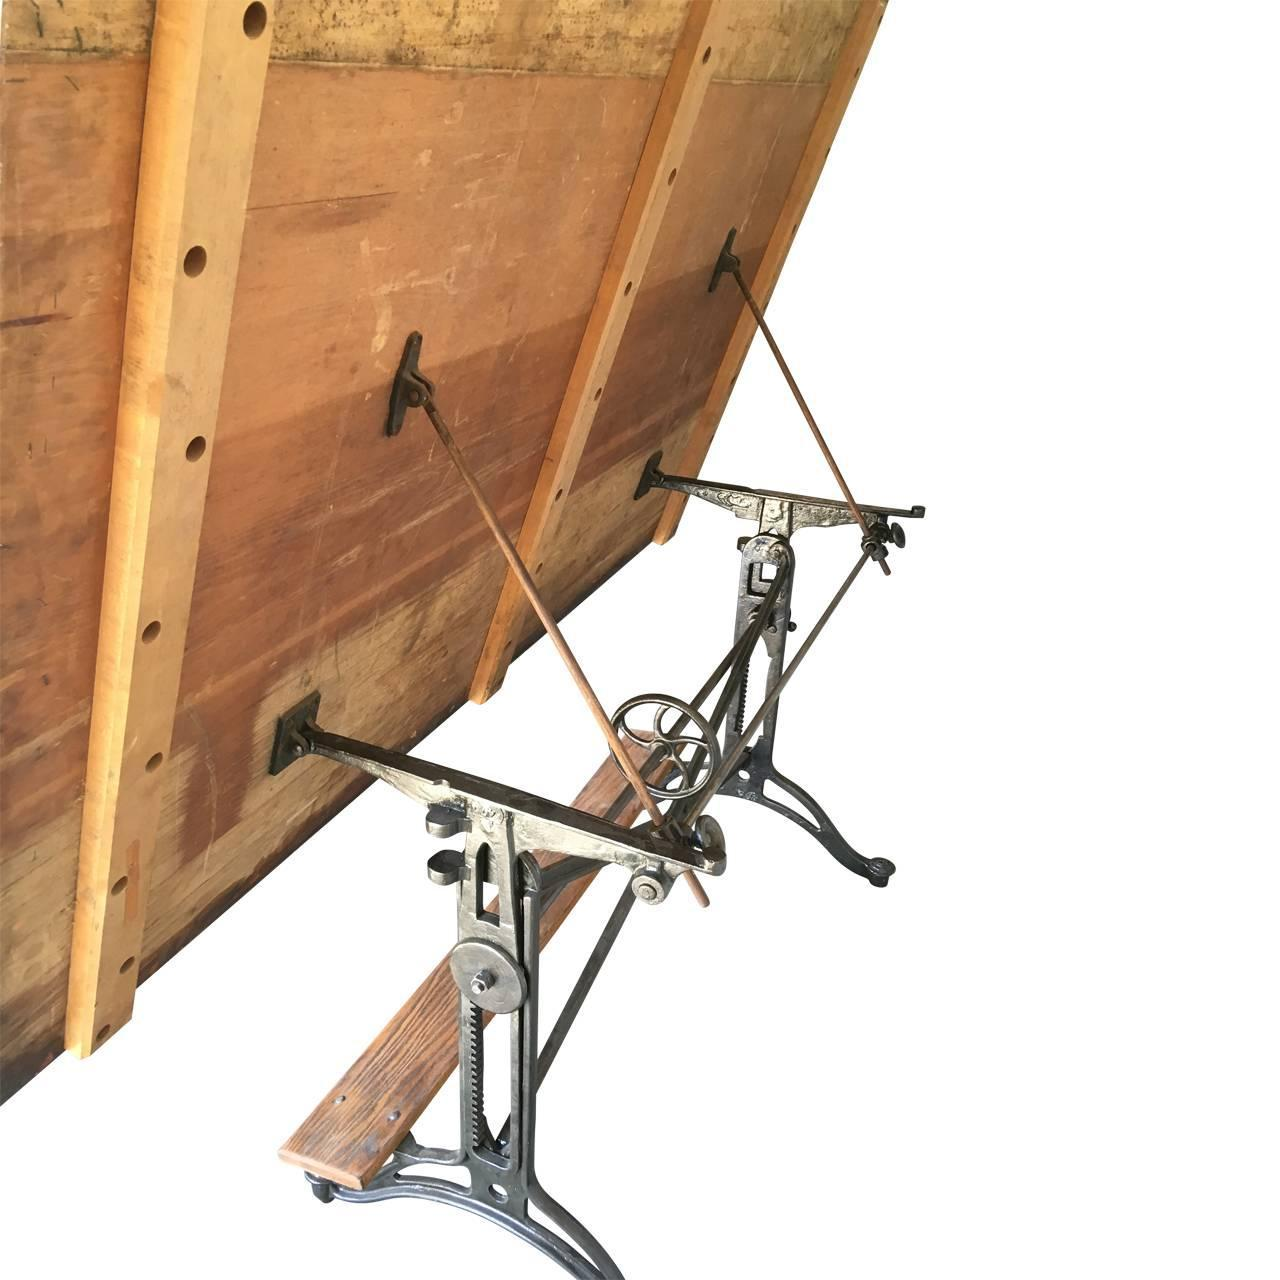 19th century vintage drafting table for sale at 1stdibs